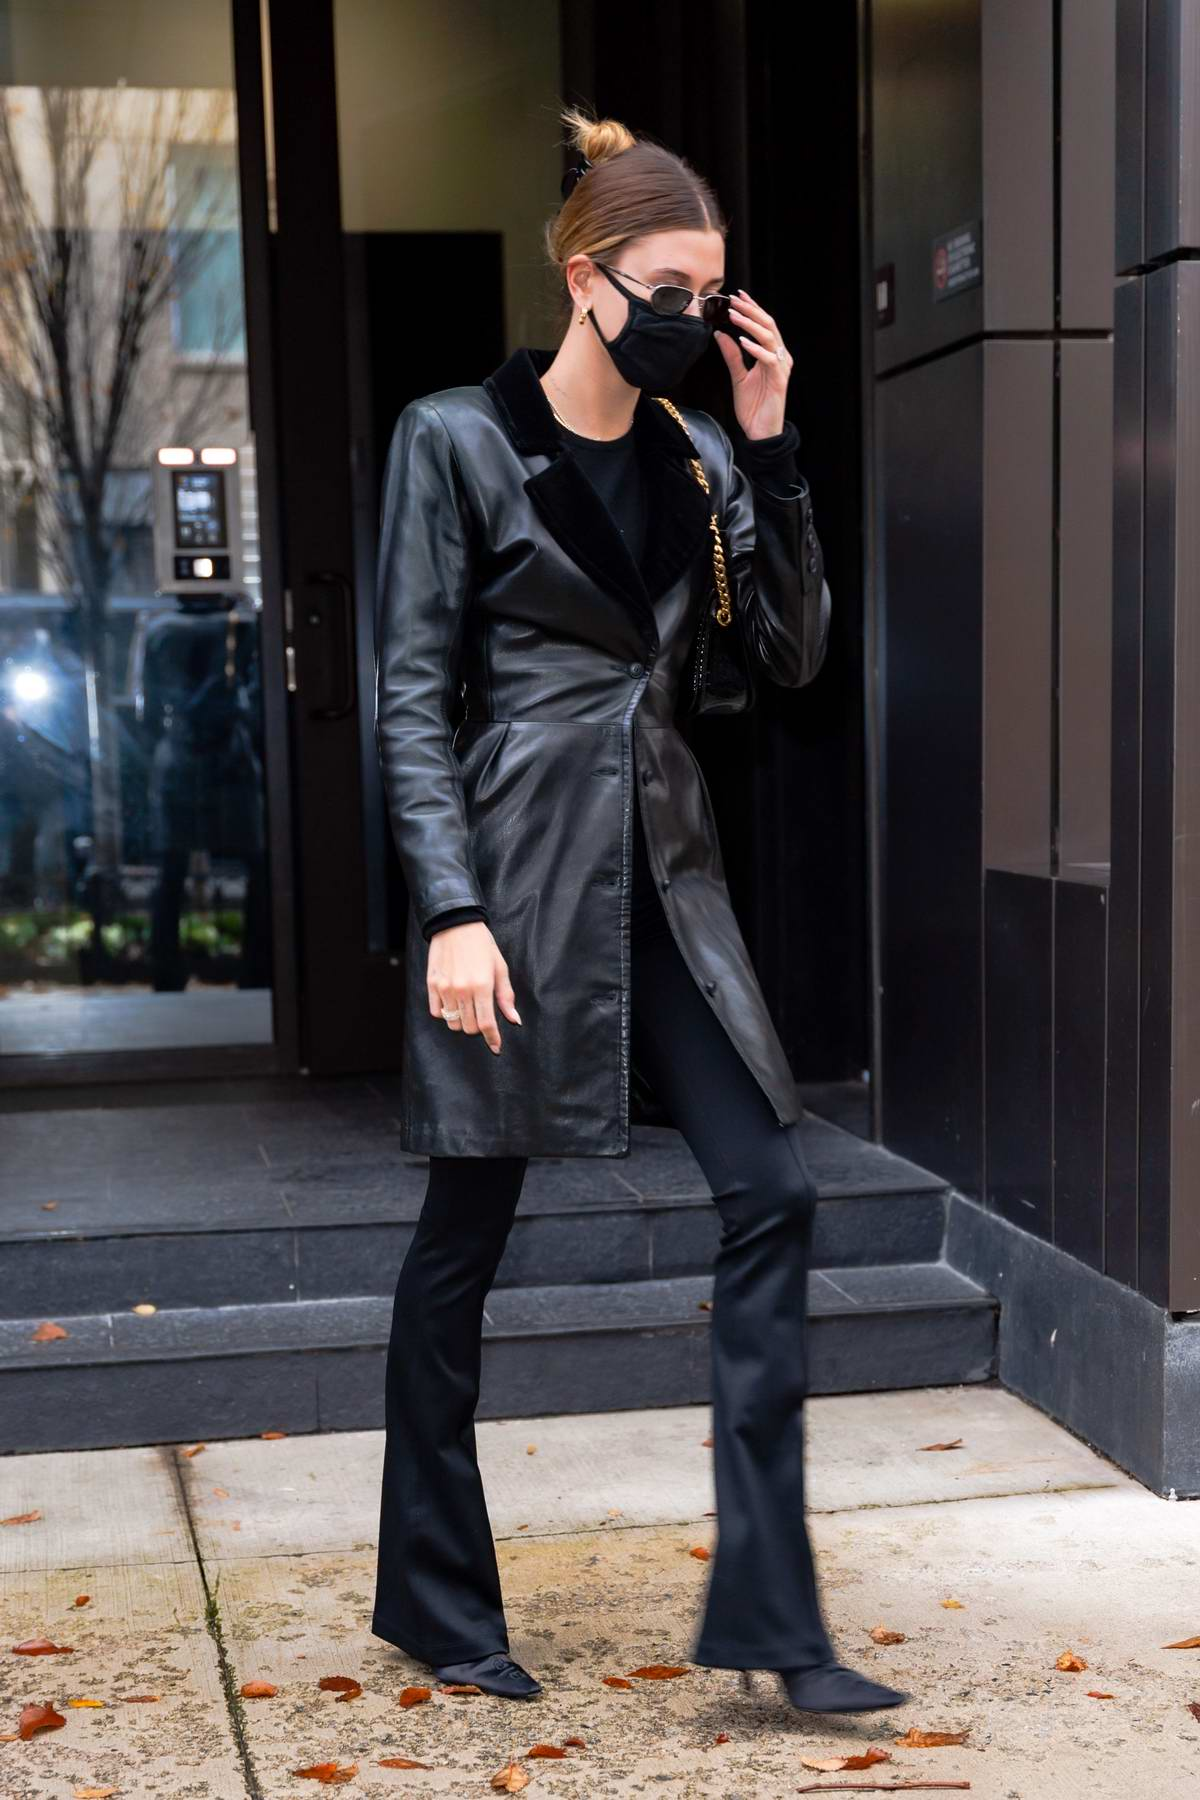 Hailey Bieber looks chic in all-black as she leaves her apartment and heads for a photoshoot at Pier 59 Studio in New York City